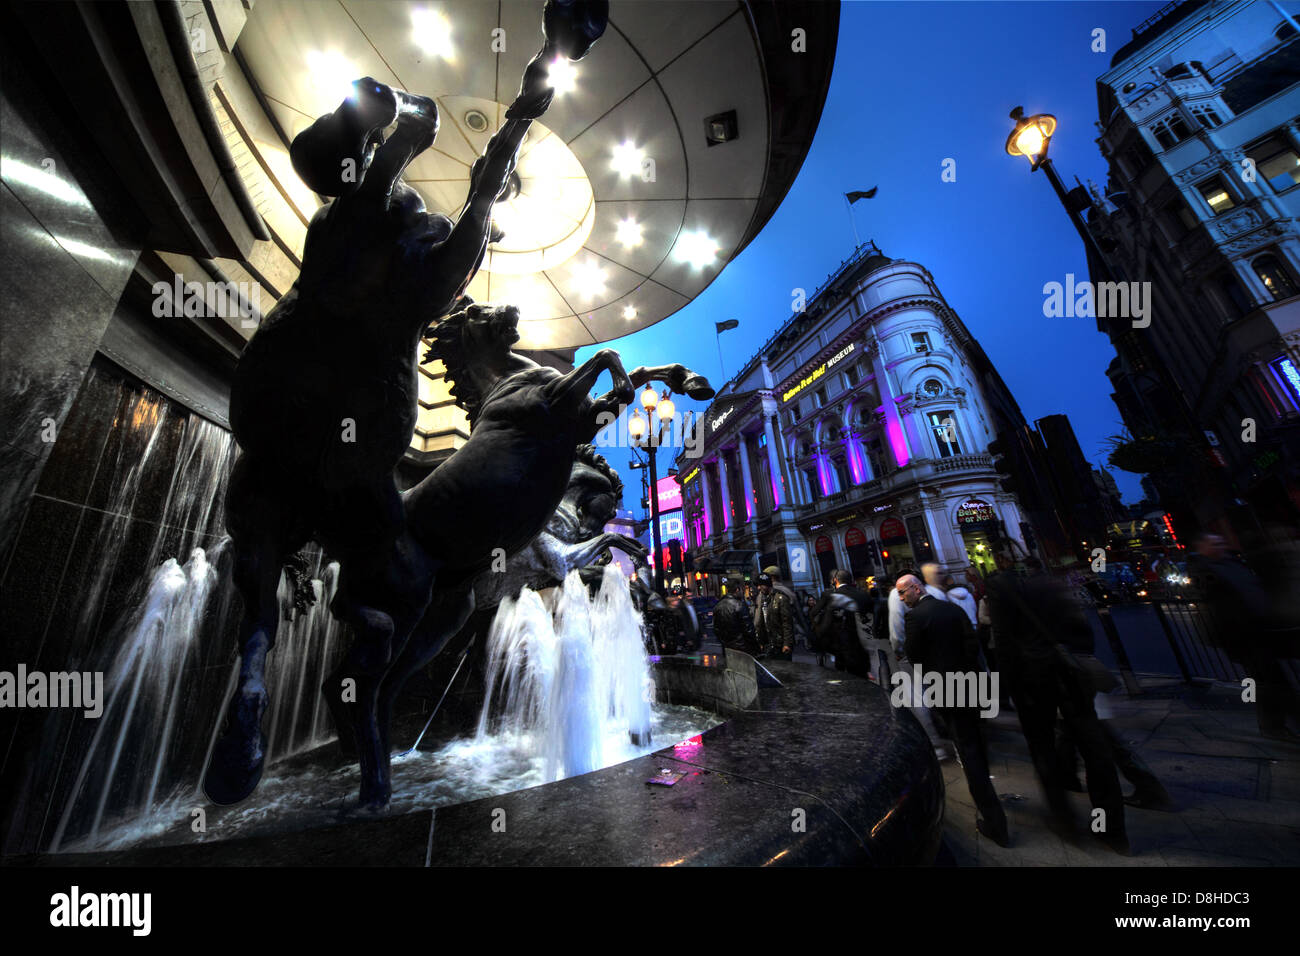 Piccadilly,Circus,London,at,dusk,statue,art,works,of,pieces,1992,people,walking,nearby,on,the,pavement,street,road,water,feature,fountain,fountains,Soho,brilliant,horse,Trafalgar,Square,spotlight,spot,light,rushing,crowd,night,shot,nightshot,wide,central,capital,city,tourist,tourism,travel,gotonysmith,Buy Pictures of,Buy Images Of